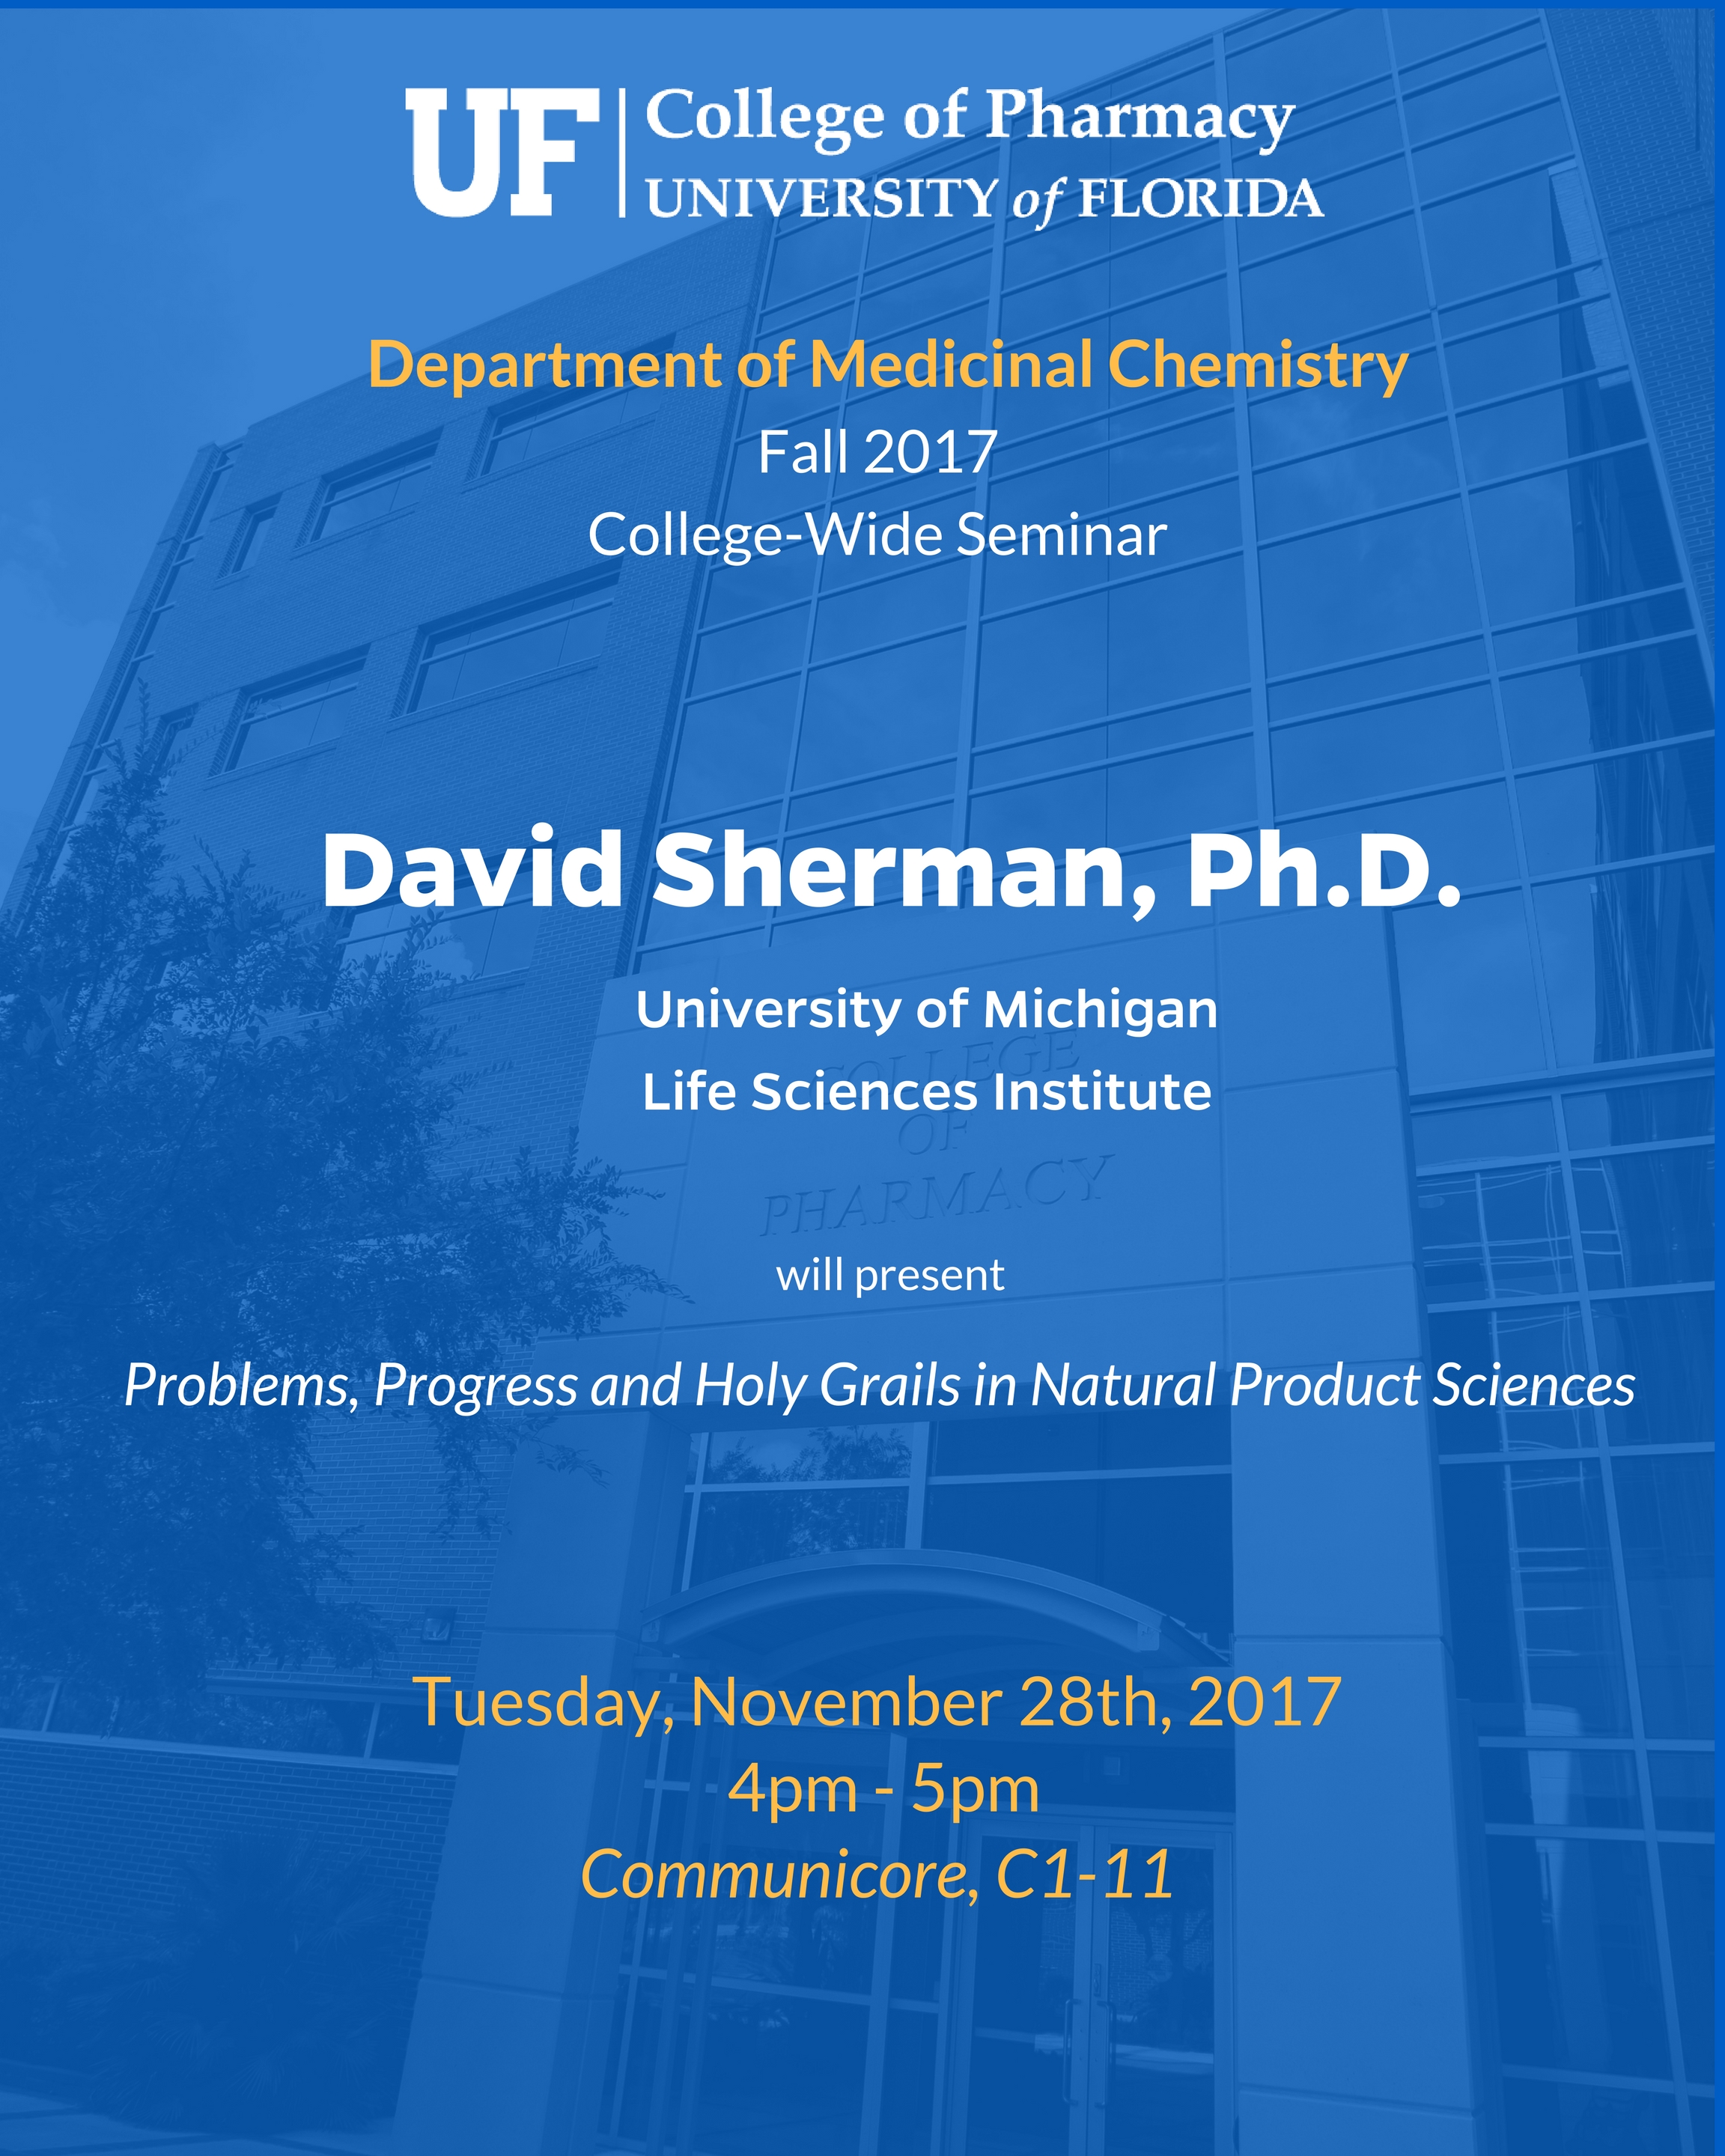 Seminar Announcement, David Sherman